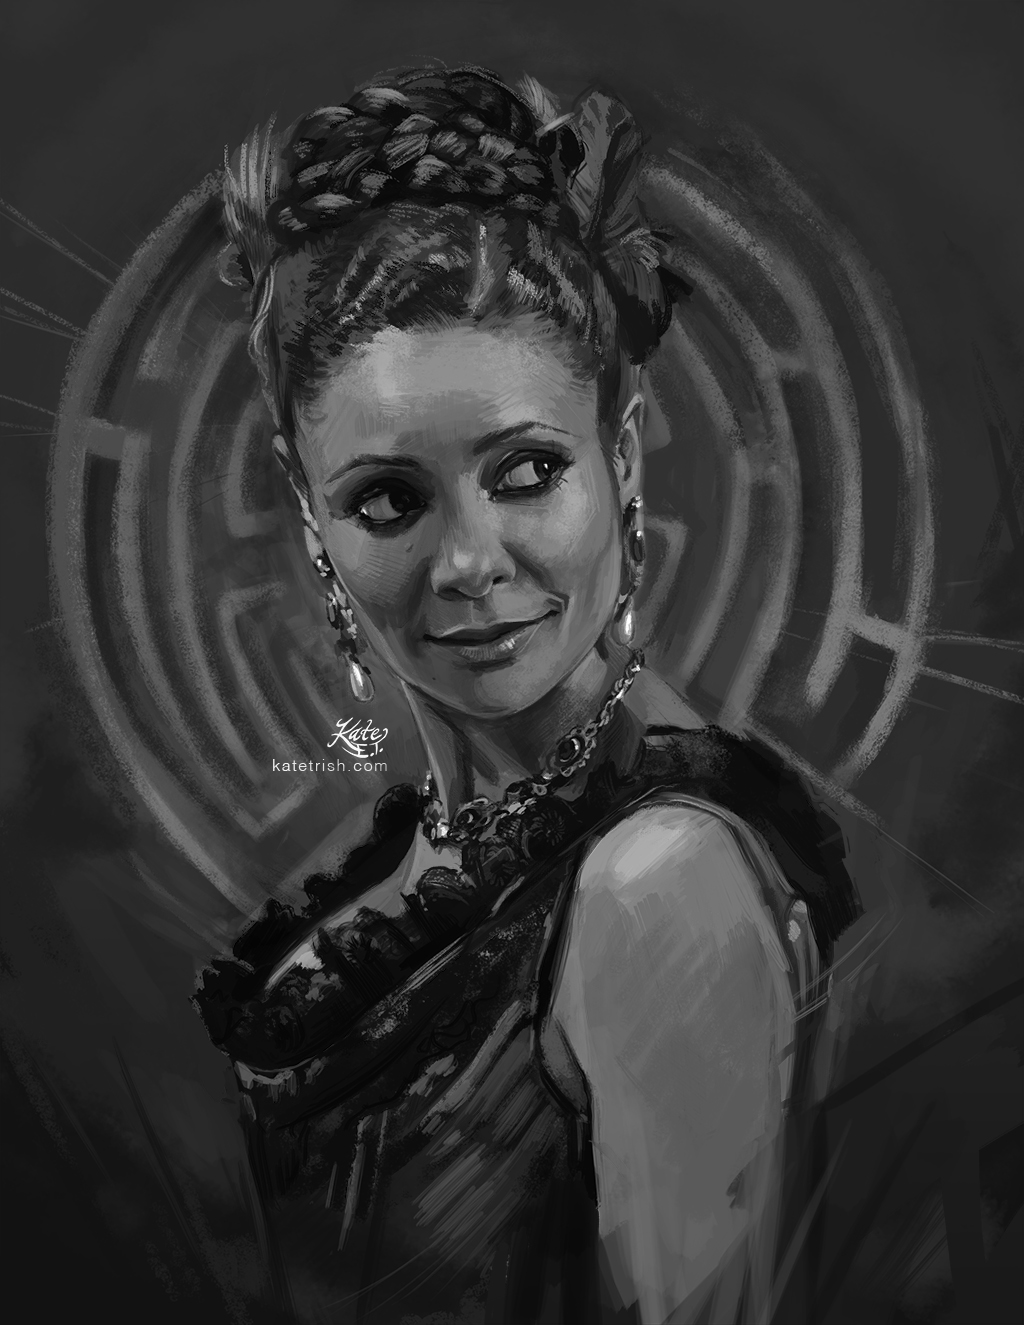 Thandie Newton as Maeve Millay (Westworld) - Commissioned Print